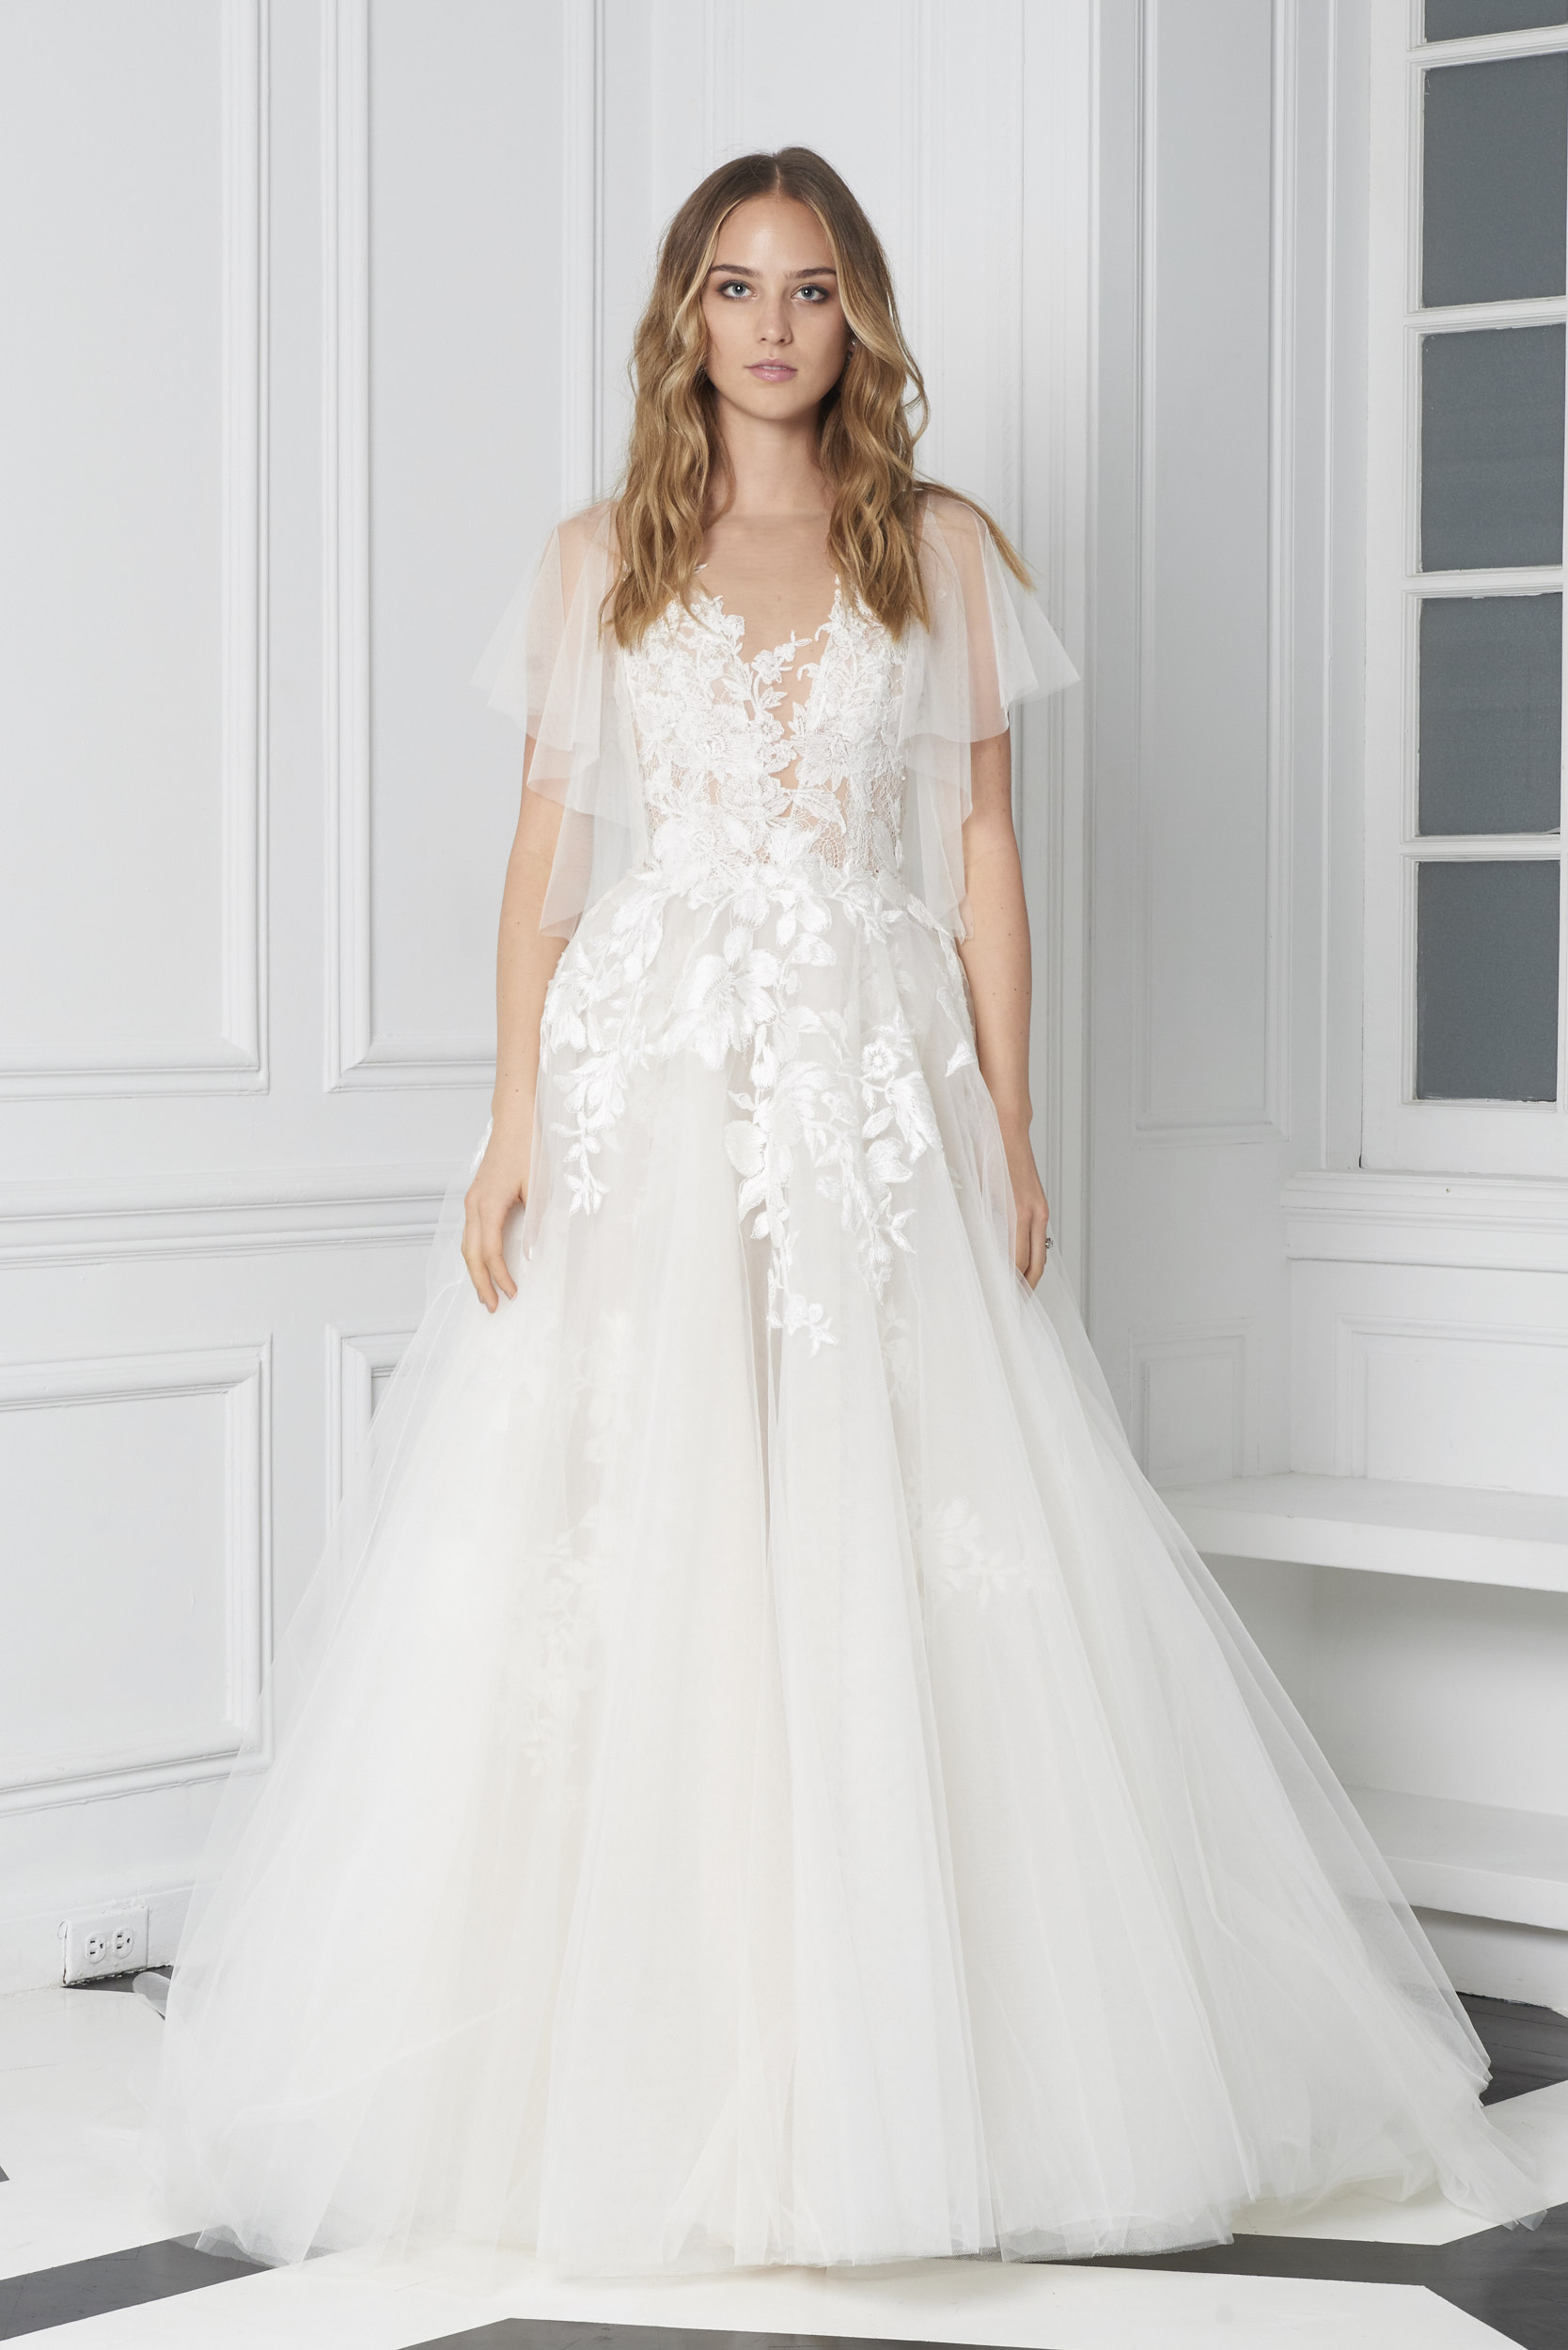 Monique Lhuillier Bliss Fall 2018 Embroidered Ball Gown with Flutter Sleeves